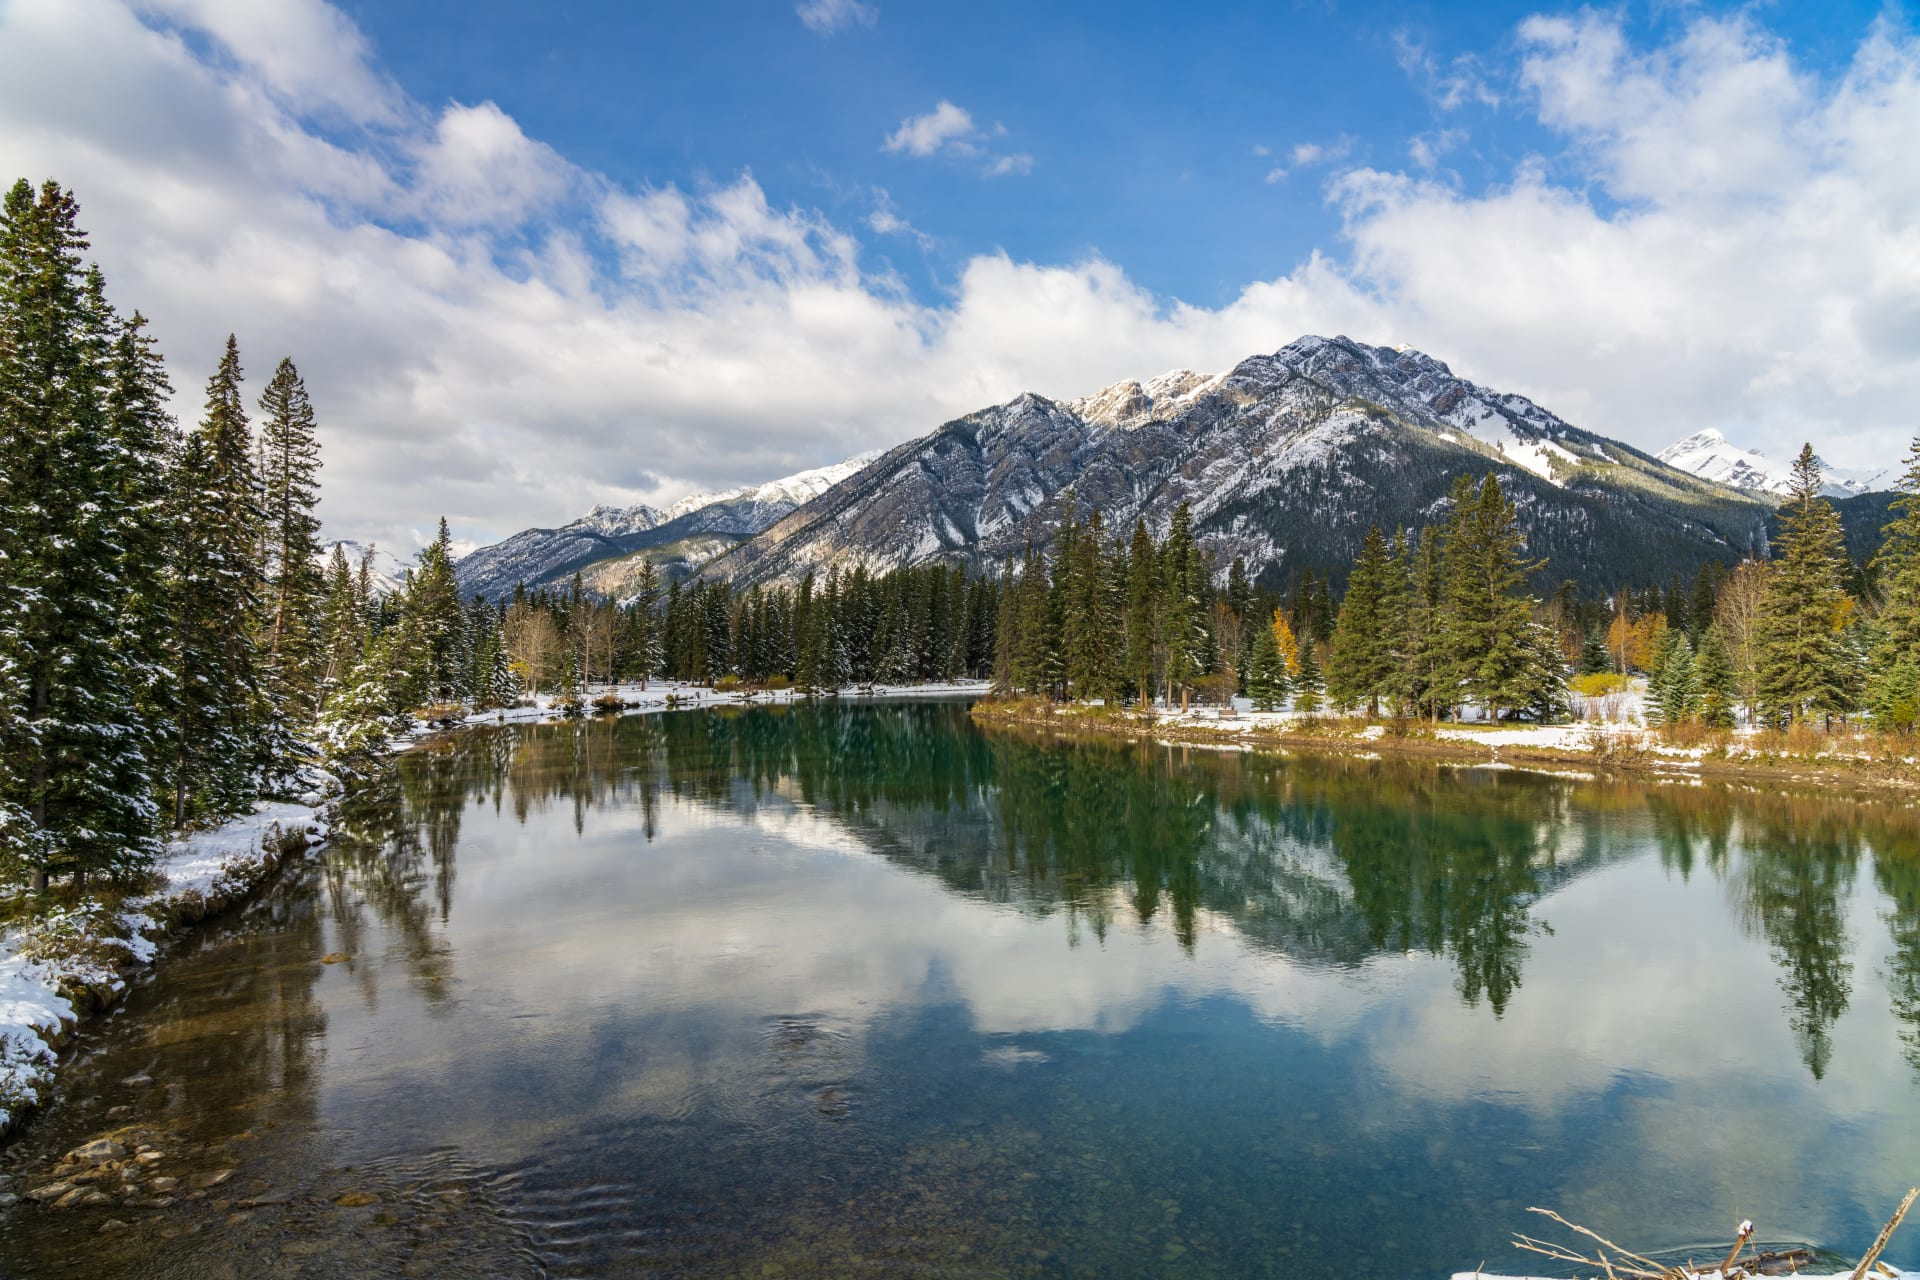 Banff - The breathtaking views of Mount Norquay from its famous sightseeing chairlift